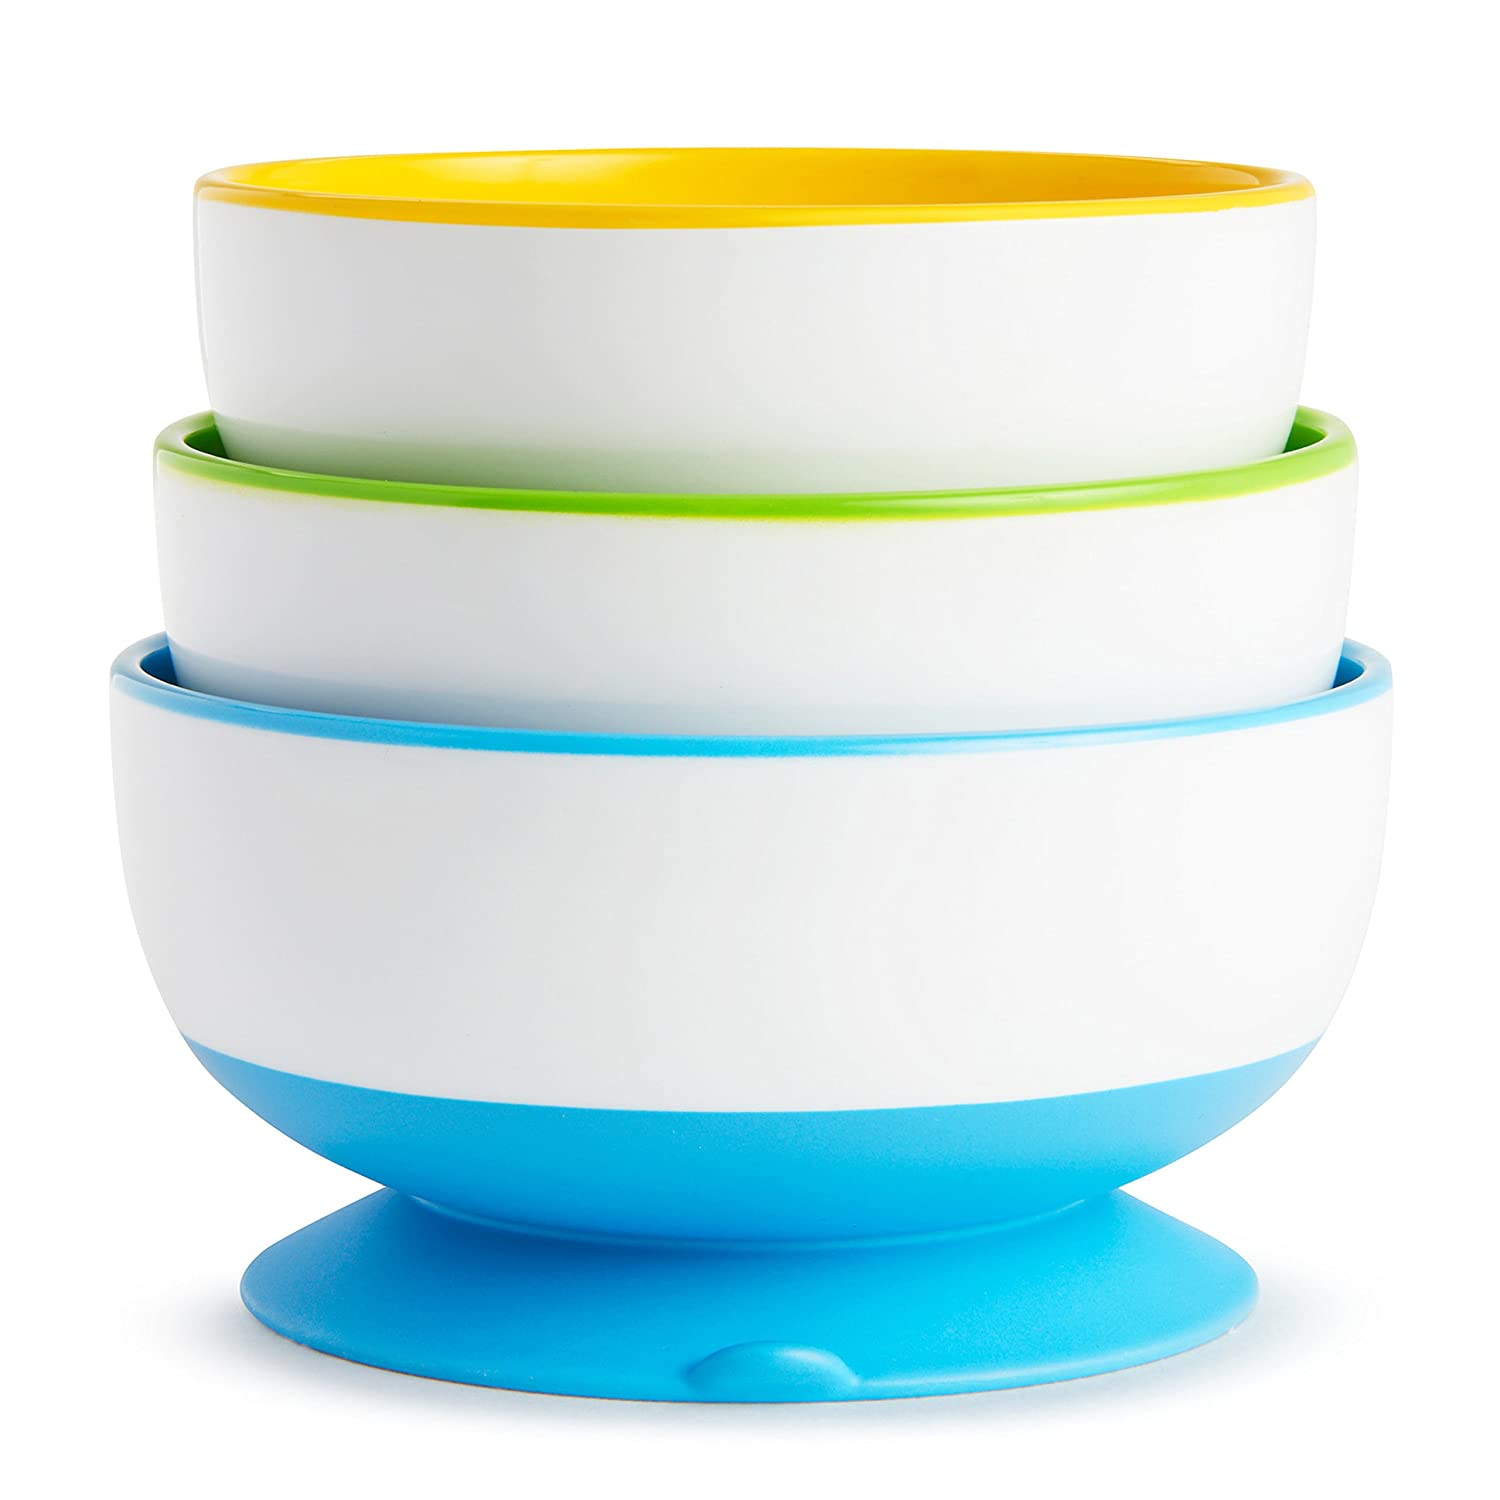 Top 9 Best Baby Bowls and Plates Reviews in 2020 1